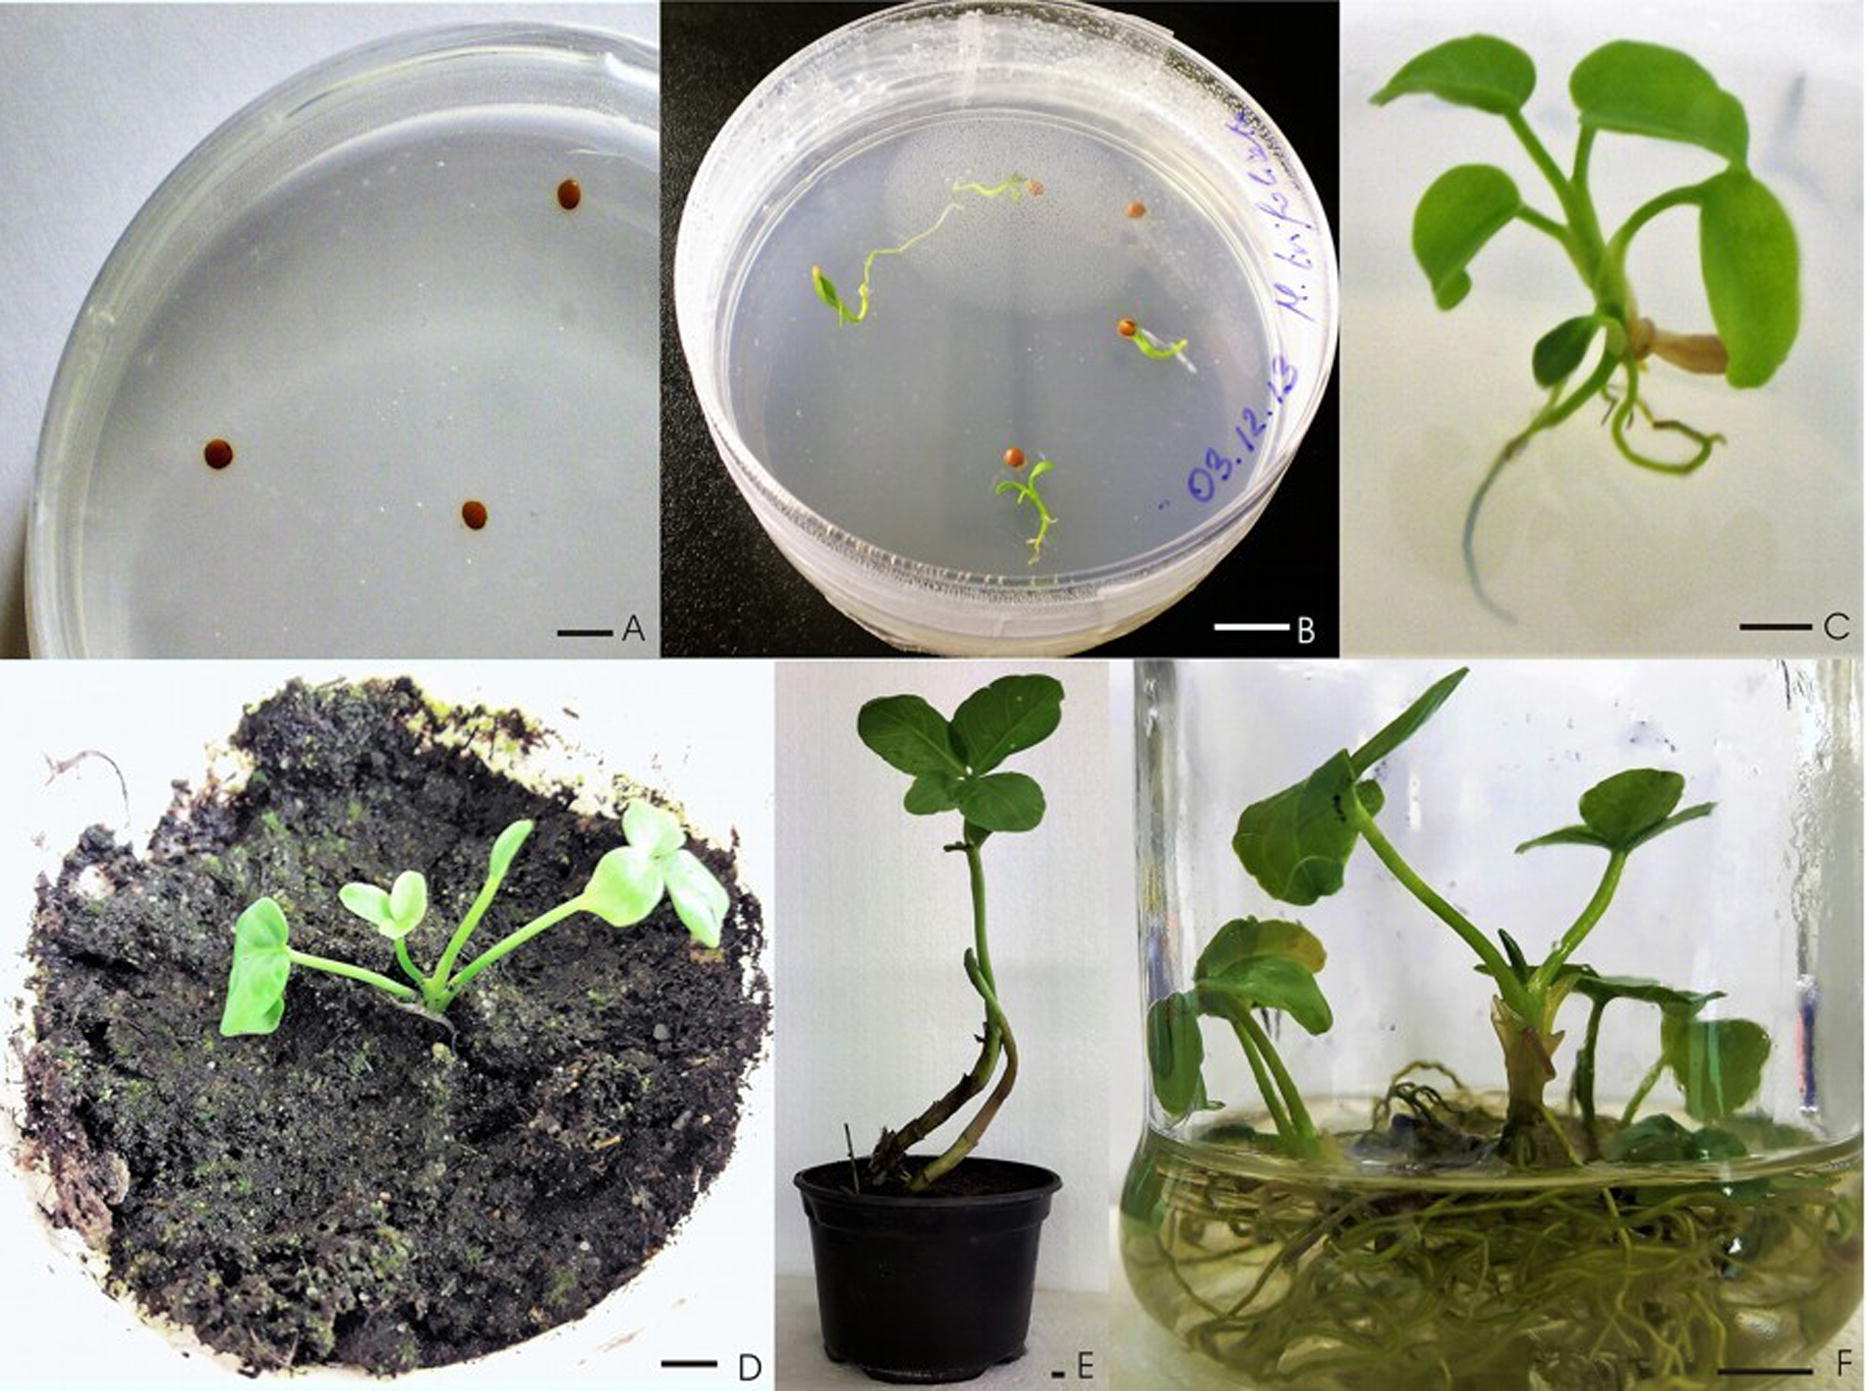 Induction of apoptosis by in vitro and in vivo plant